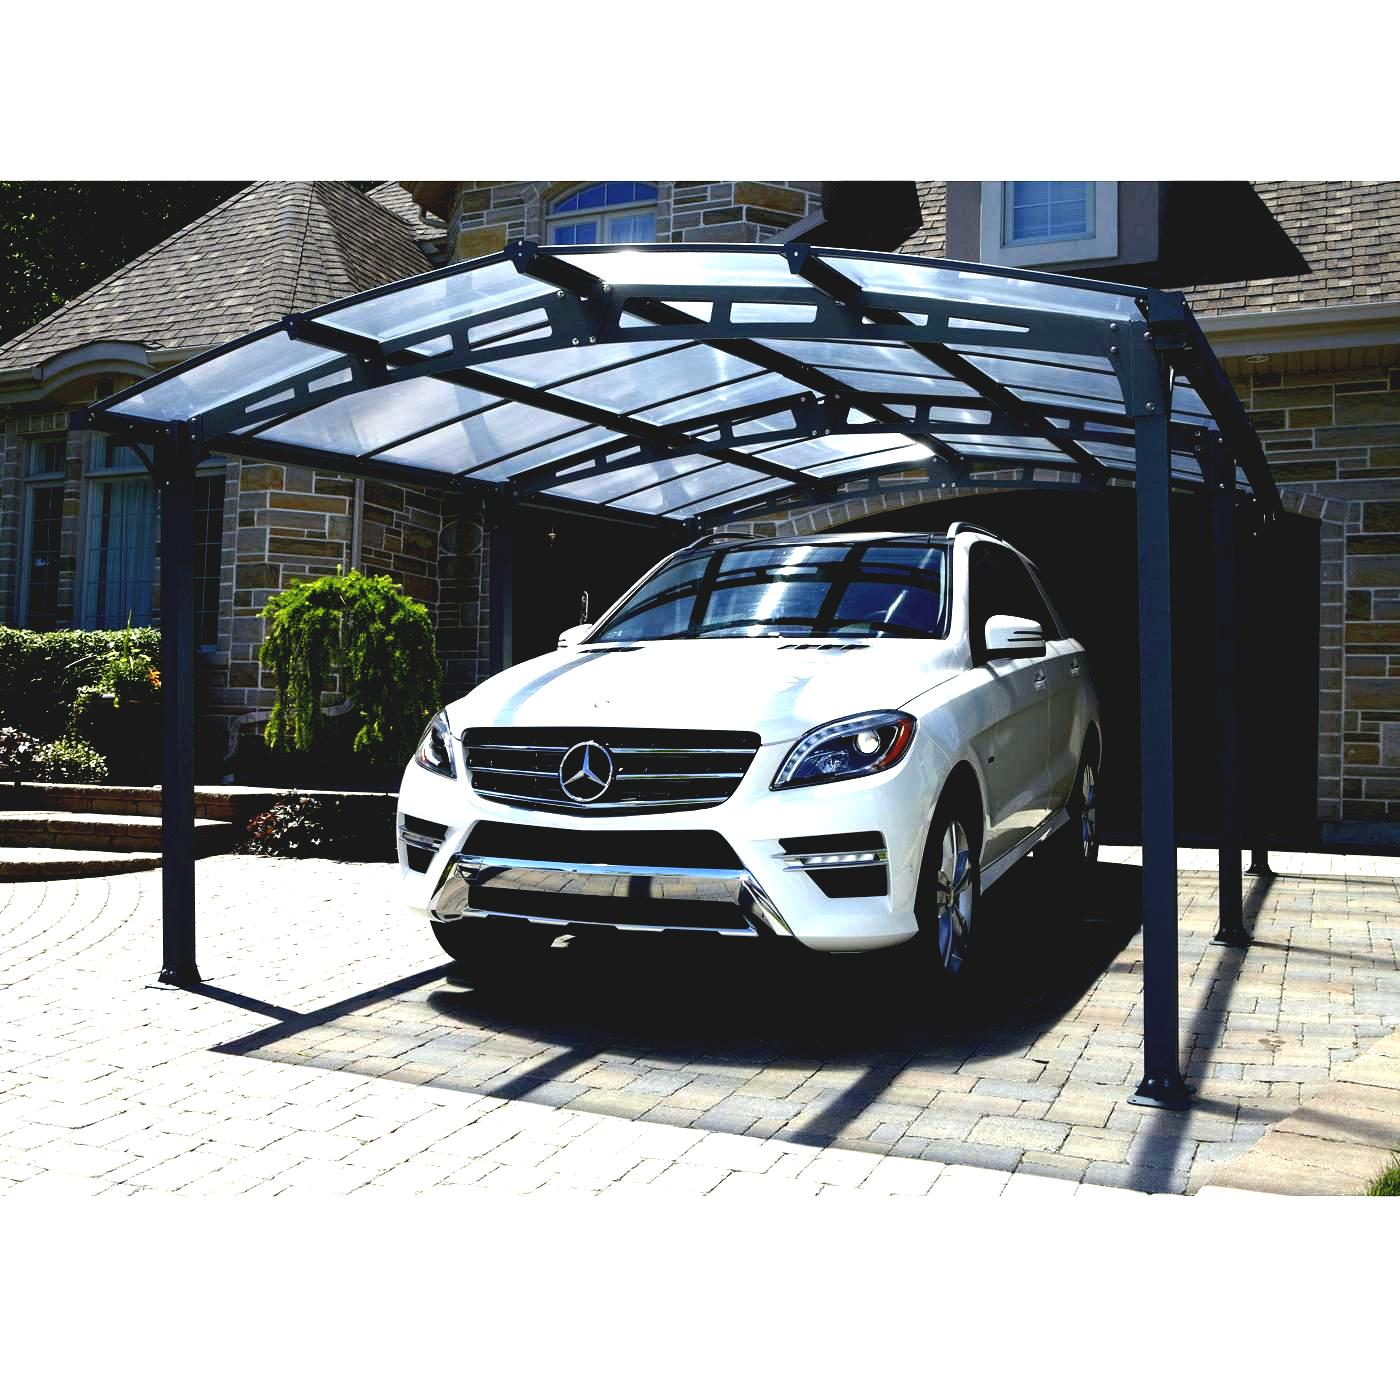 full size of metal car shelter shelters canada used carports for sale ilves info x carport shed roof designs flat plansponents add